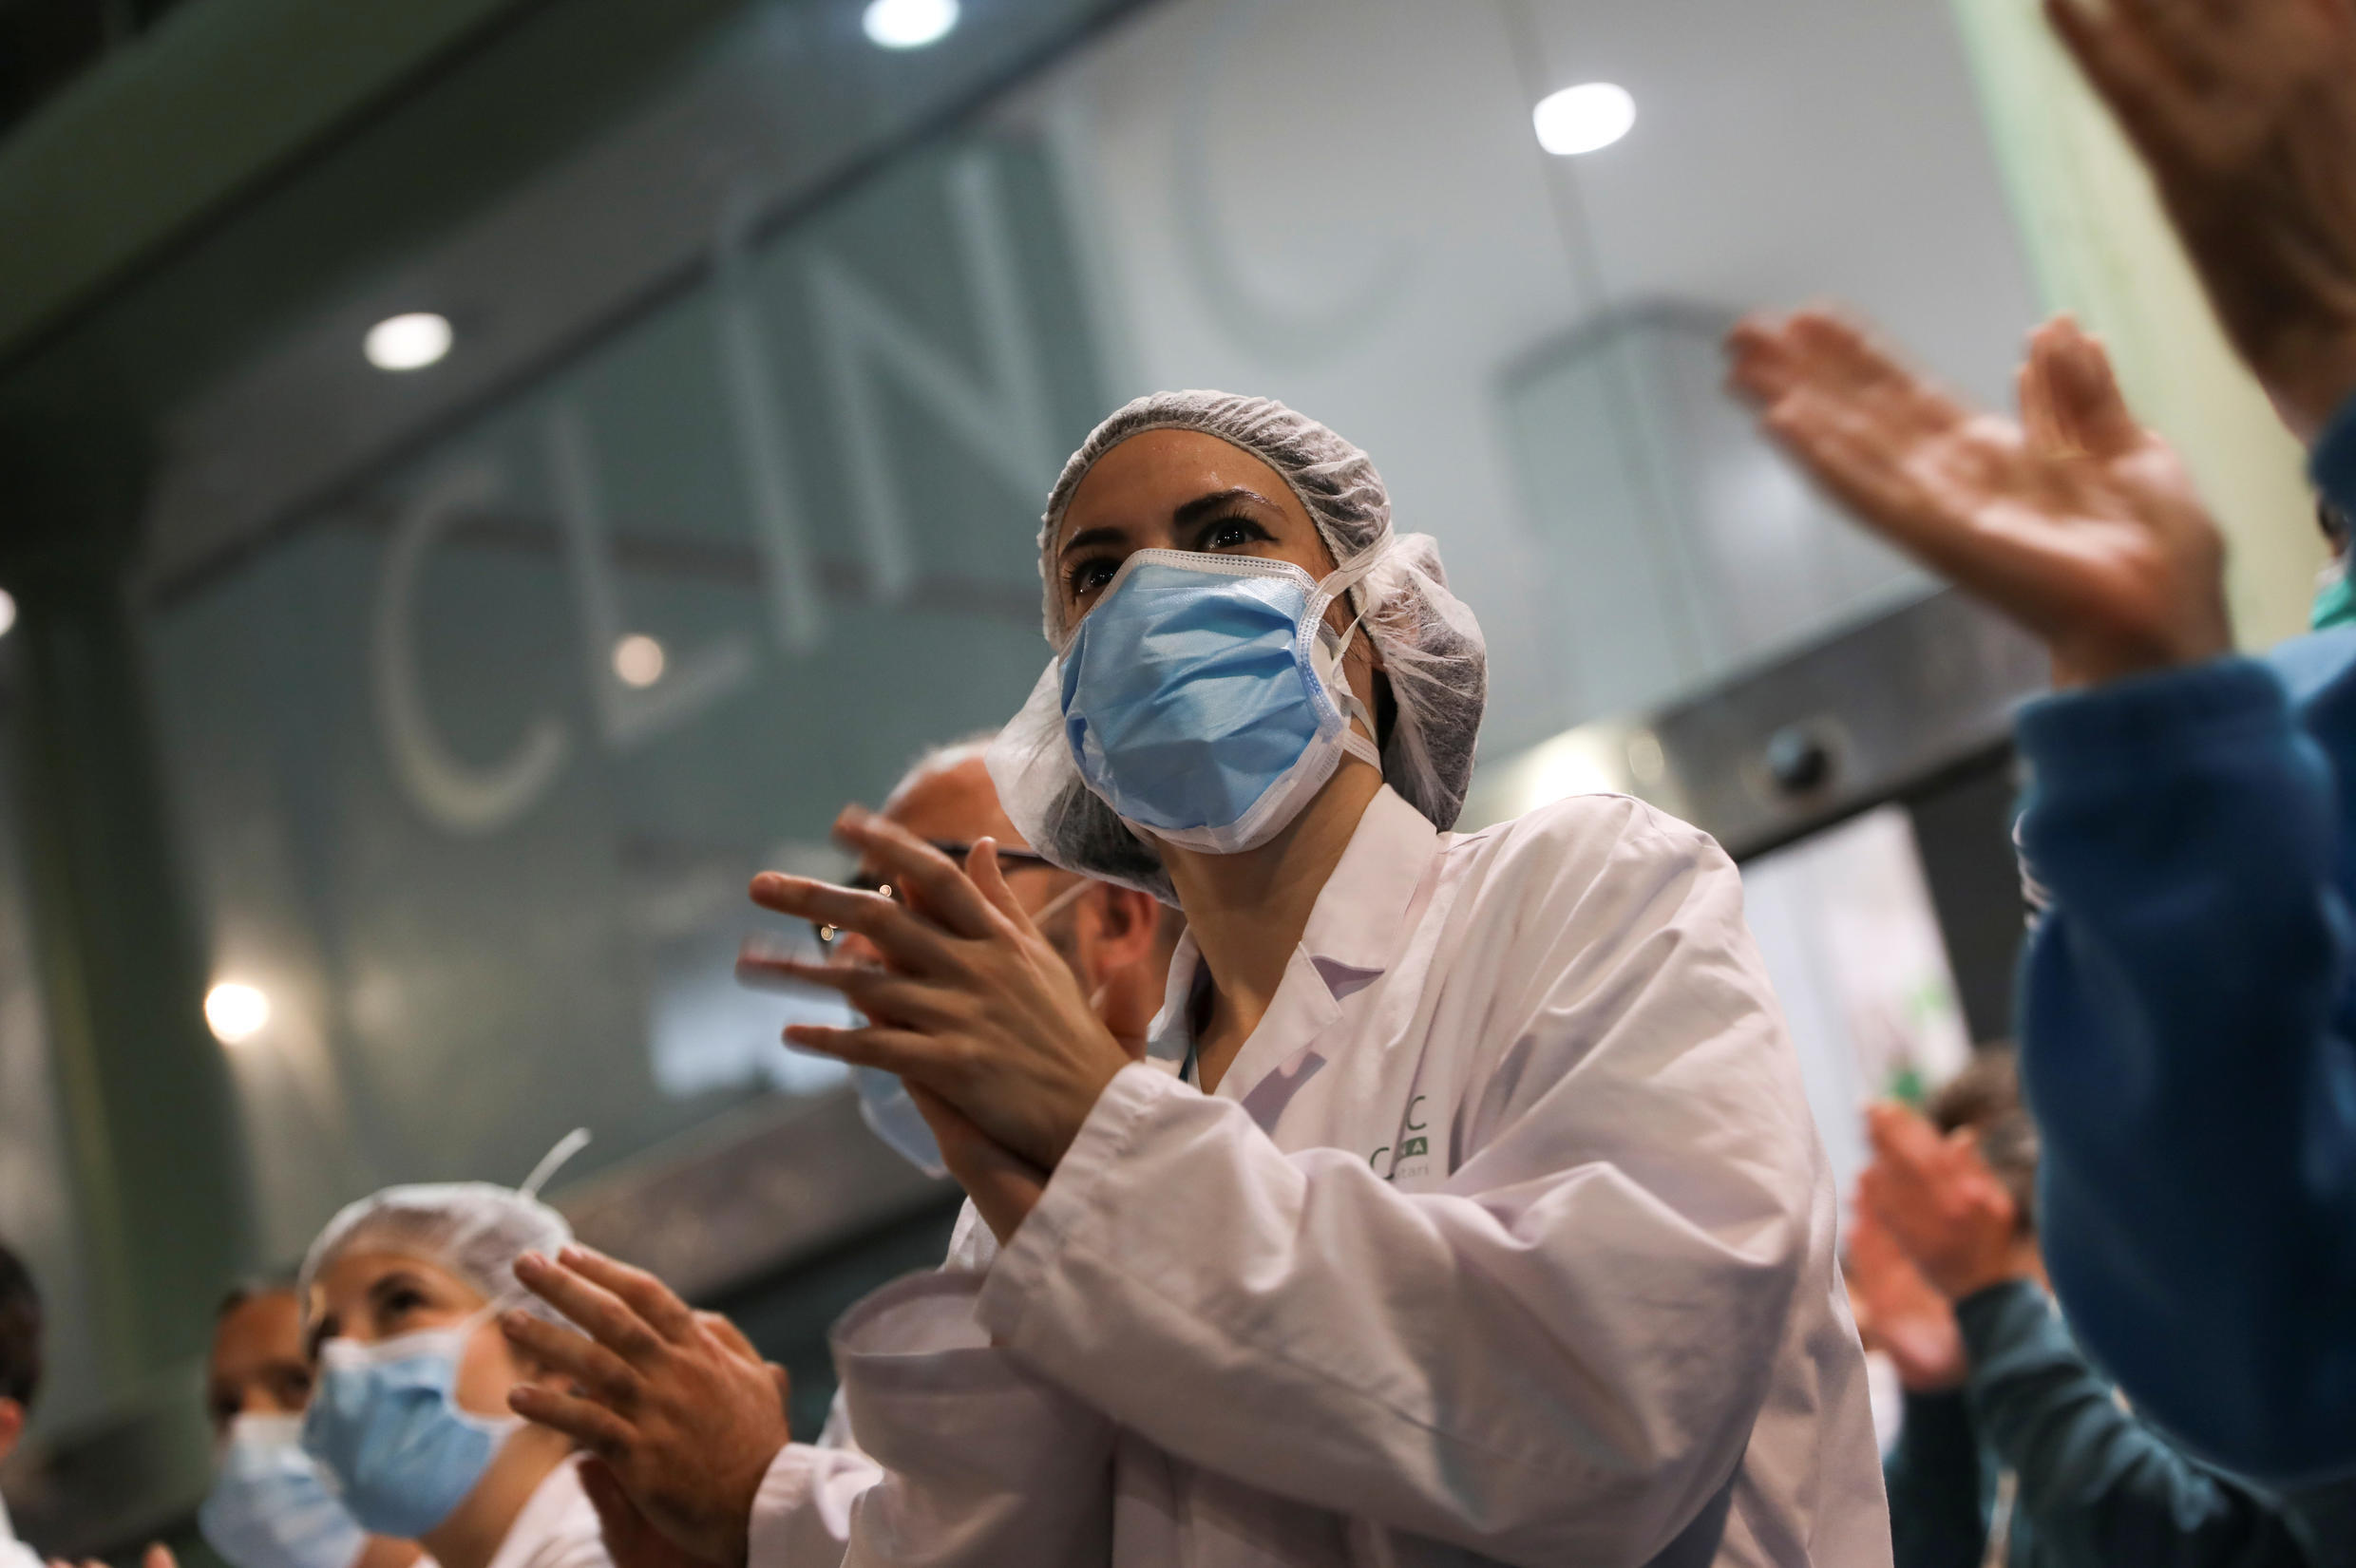 Health workers from Clinic hospital applaud citizens who show them gratitude from their balconies and windows, during the coronavirus disease (COVID-19) outbreak, in Barcelona, Spain, March 26, 2020